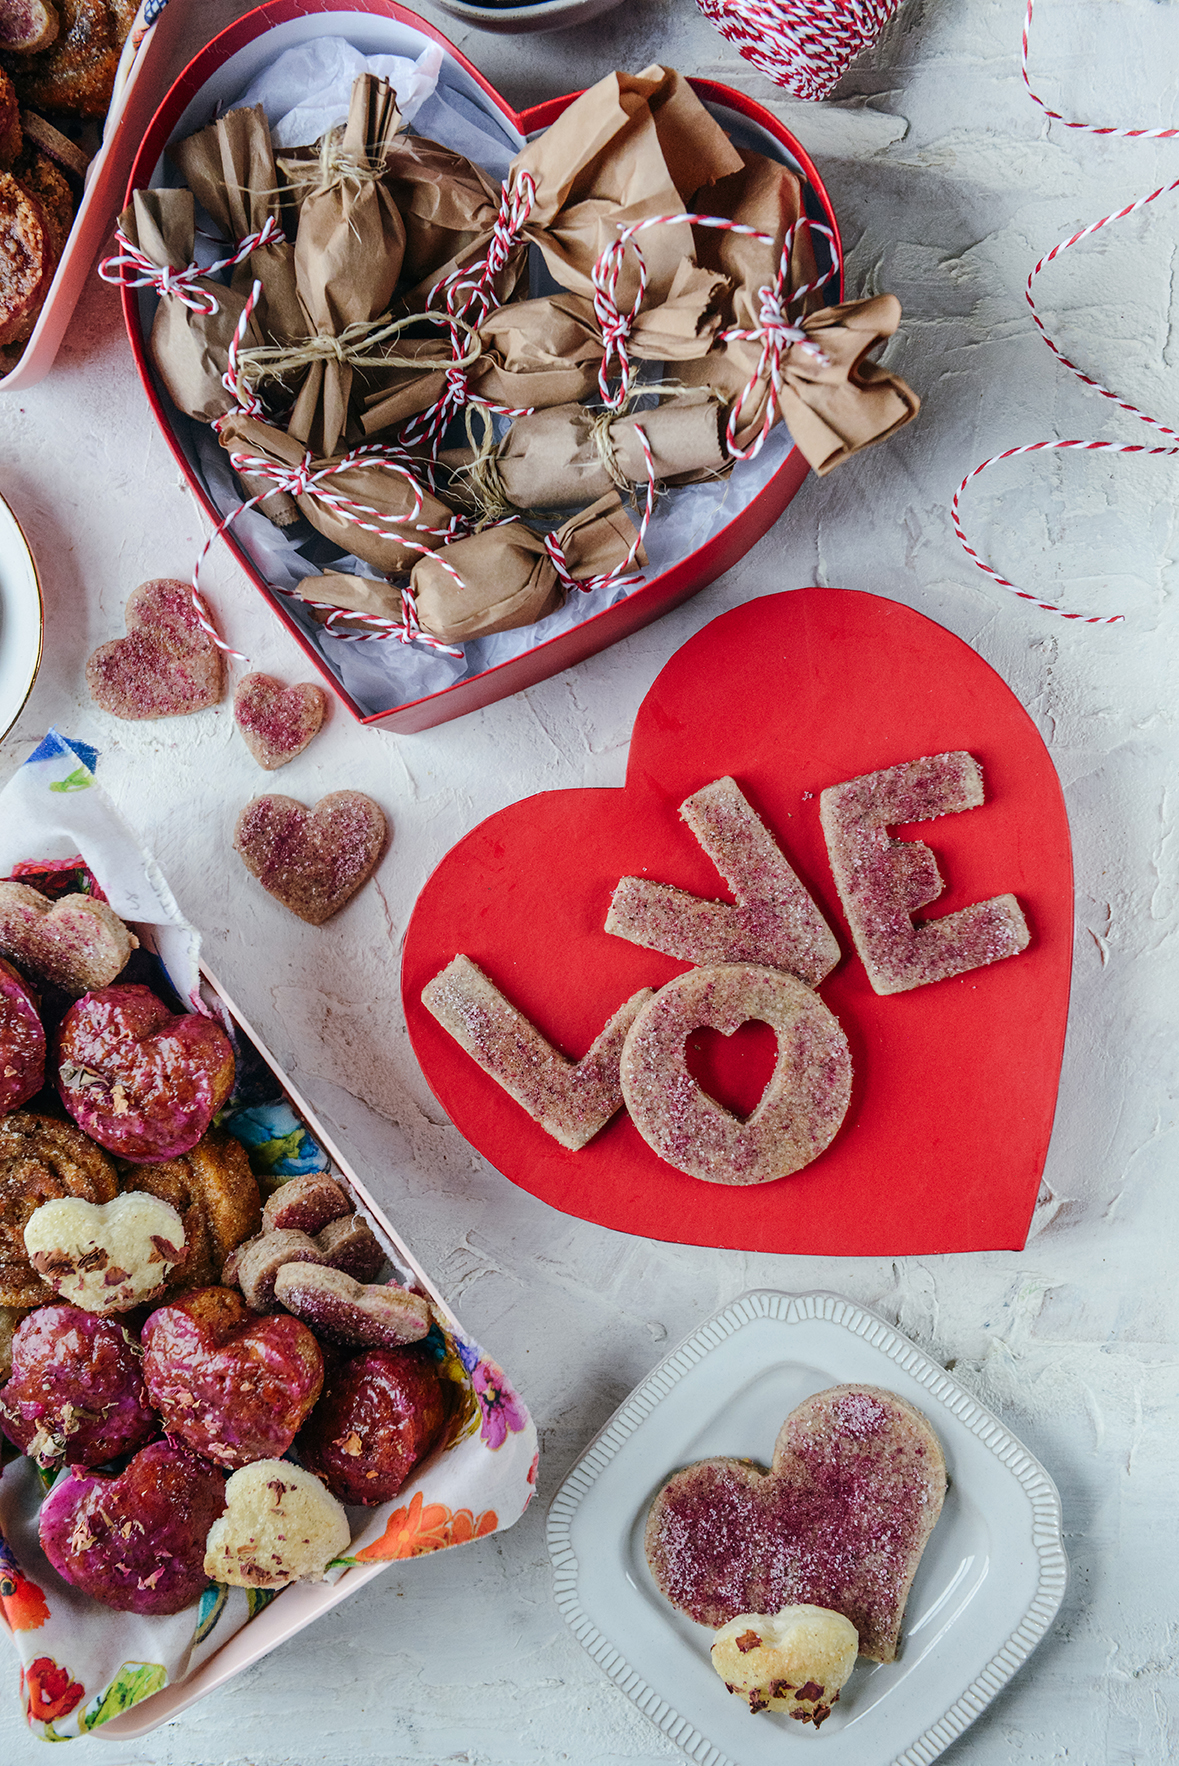 Sending Love: Valentine's Day Parcels with Swedish Rye Cookies, Jam Shortbread & More! // www.WithTheGrains.com